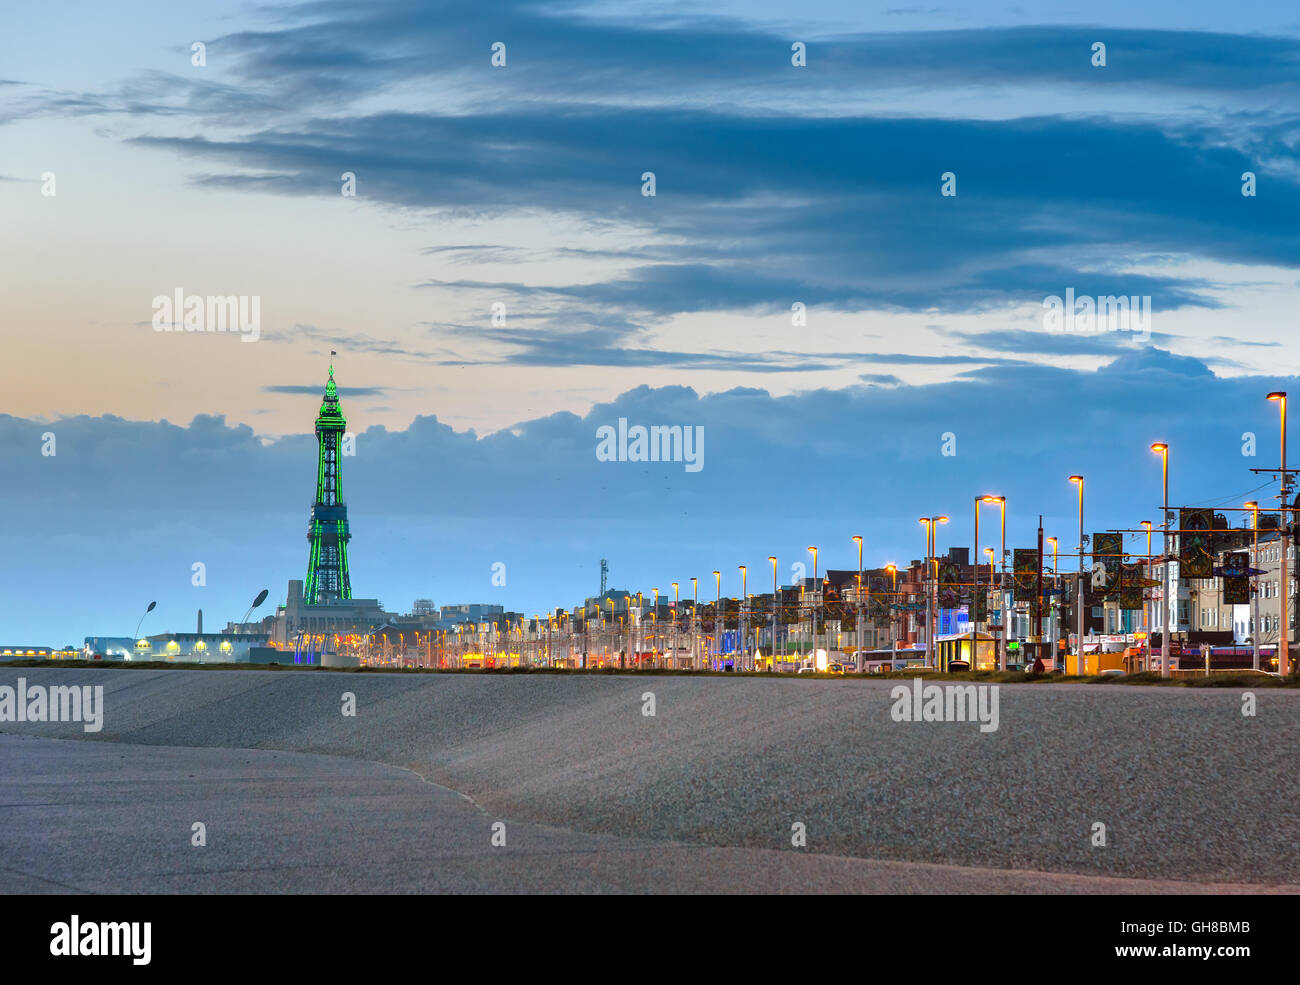 Blackpool tower illuminated in green light at the end of promenade. - Stock Image